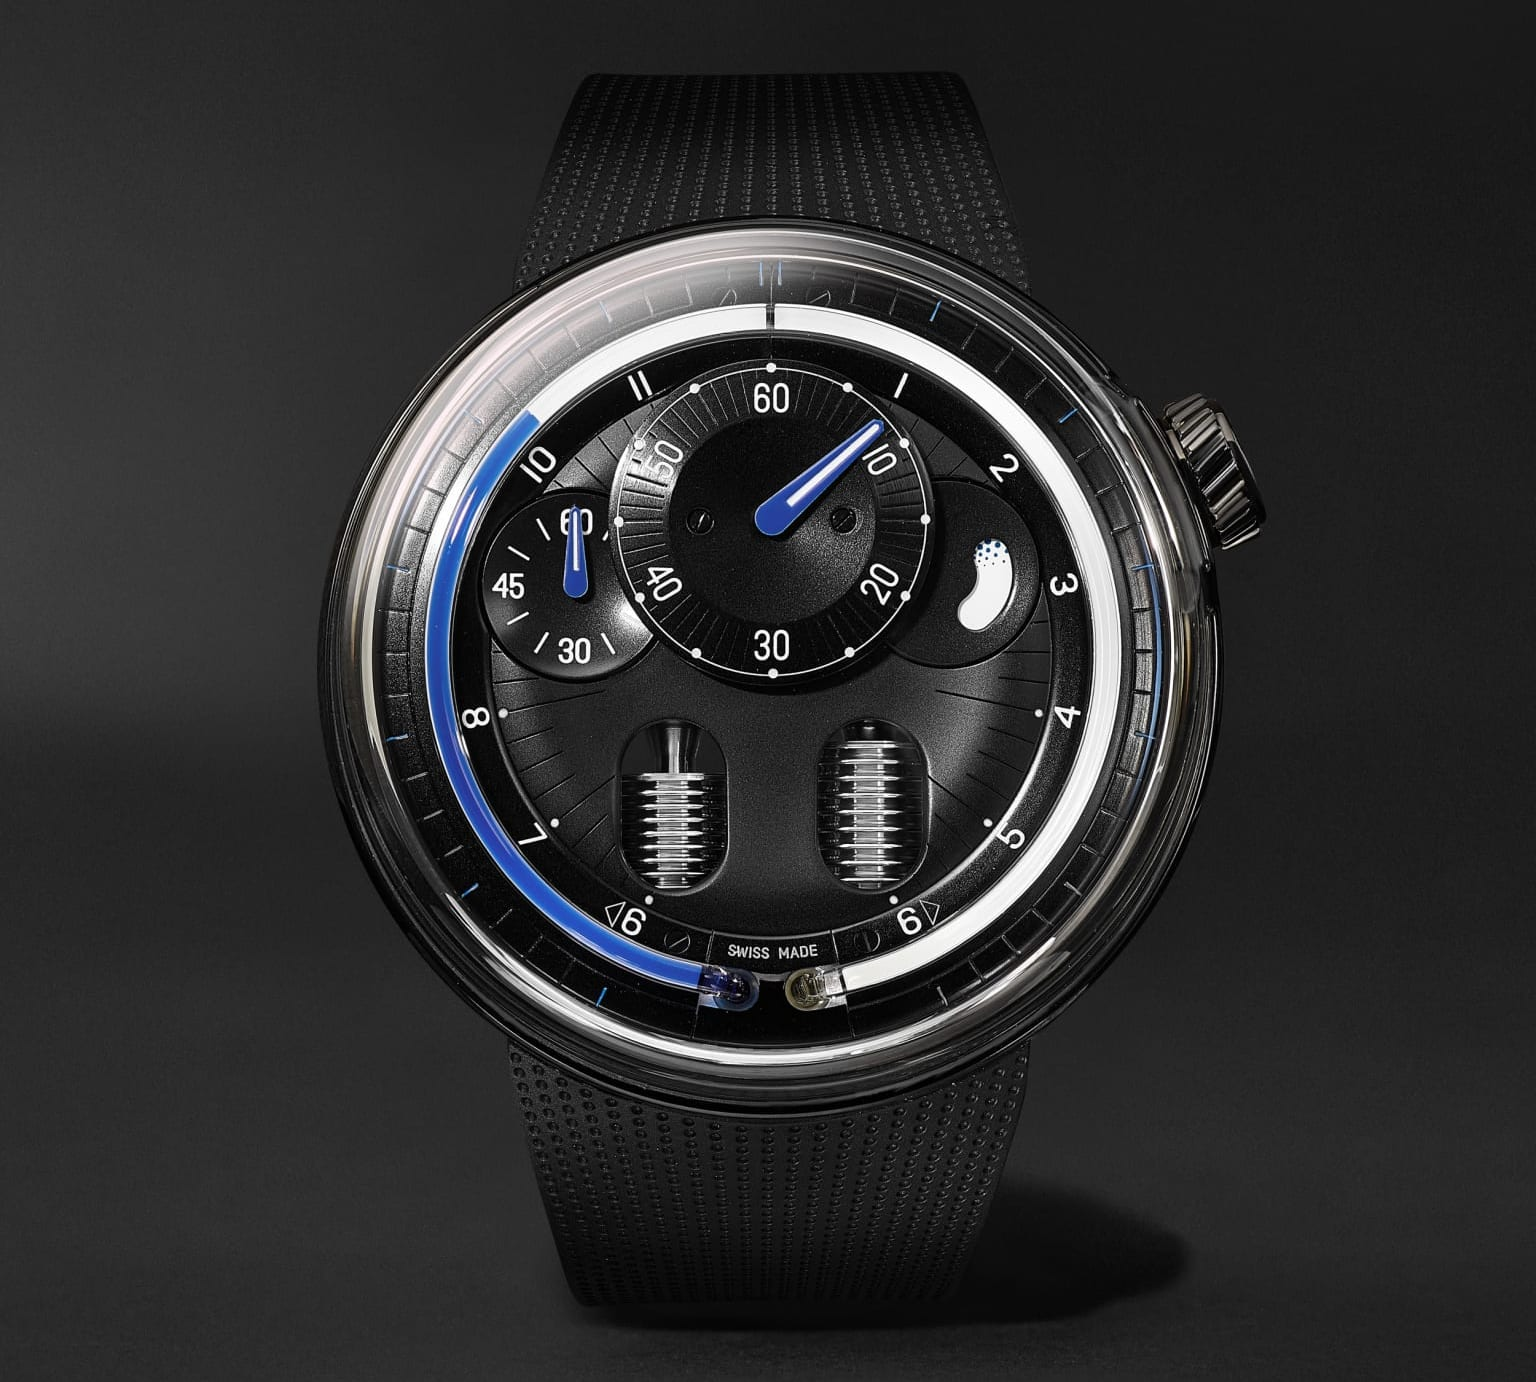 H0 Hand-Wound 48.8mm Stainless Steel and Rubber Watch_1193179_mrp_in